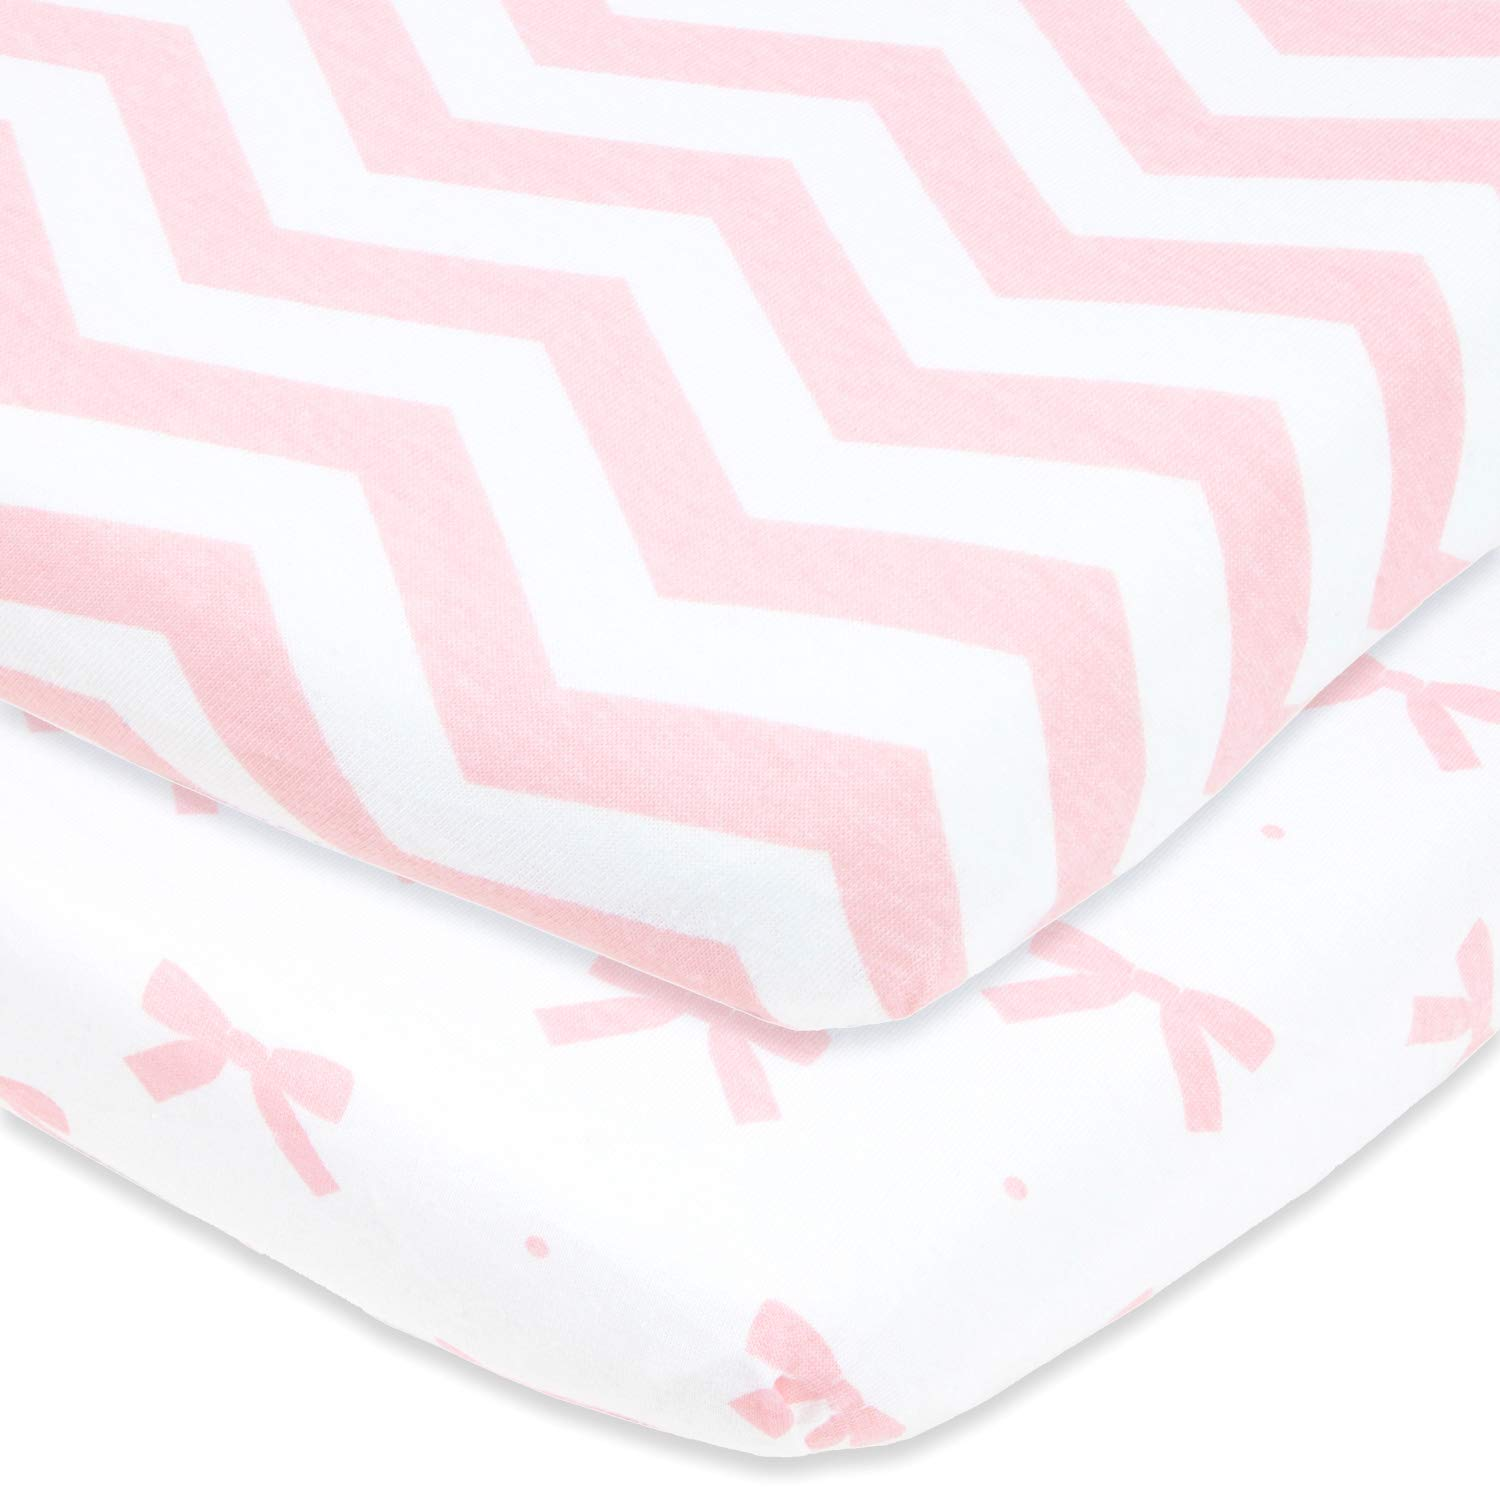 Cuddly Cubs Pack n Play Playard Sheets - Set of 2 Jersey Cotton Fitted Sheets for Mini/Portable Crib Mattress - Gray and Pink with Chevron, Dots & Bows - TOP QUALITY Nursery Bedding for Girls CC2438Pink